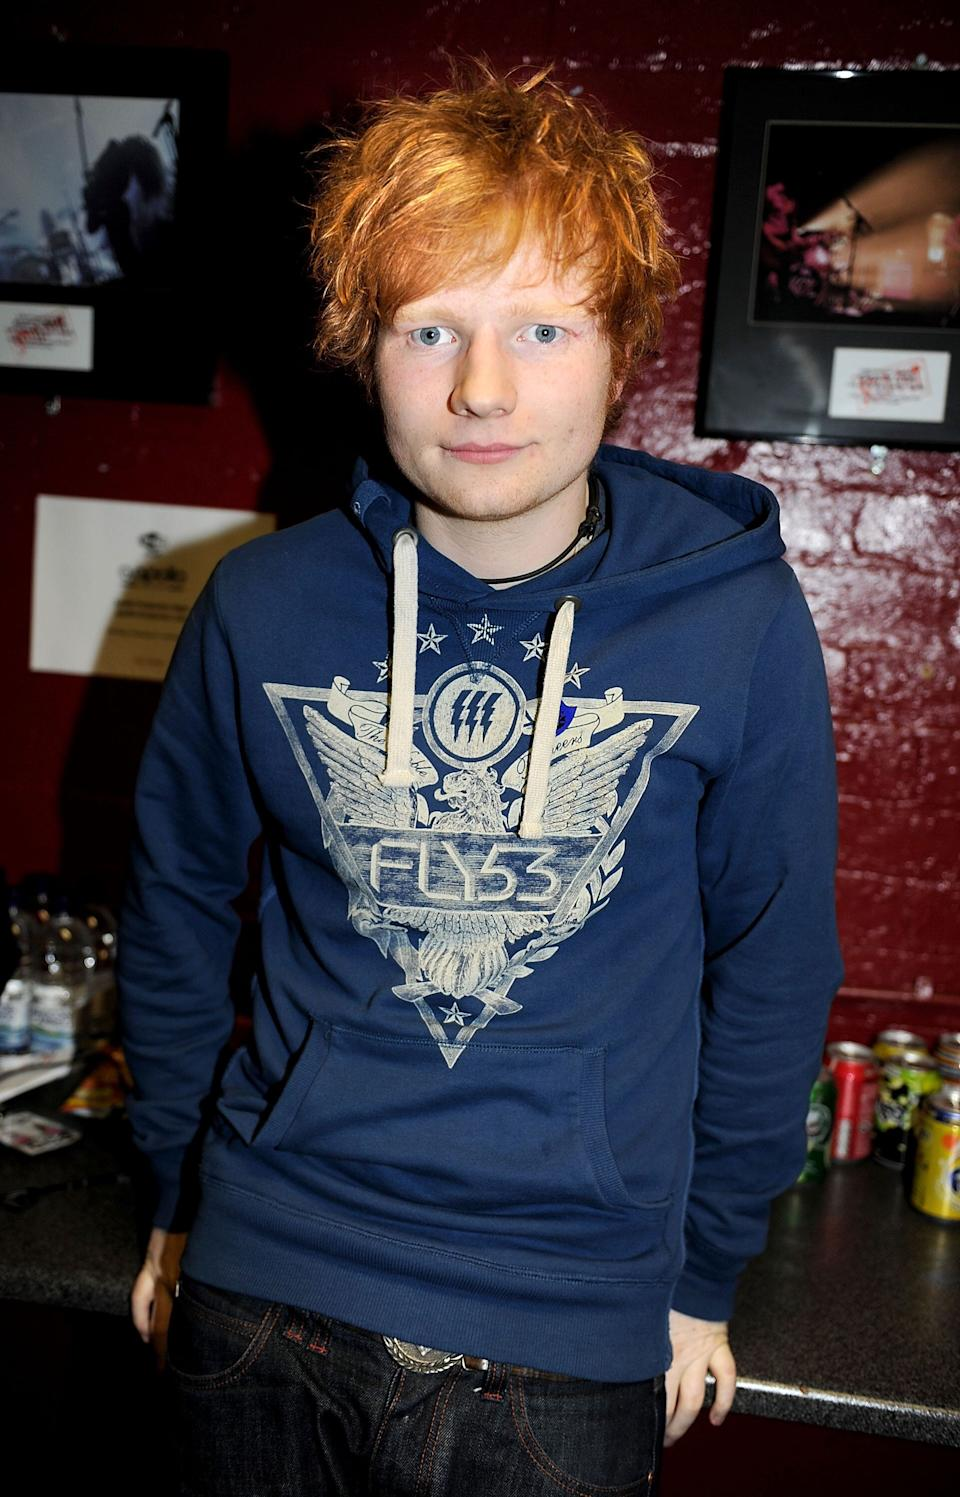 MANCHESTER, ENGLAND - DECEMBER 05:  (EXCLUSIVE COVERAGE) Ed Sheeran poses backstage before performing during Xfm's Winter Wonderland at Apollo on December 5, 2011 in Manchester, England.  (Photo by Shirlaine Forrest/WireImage)